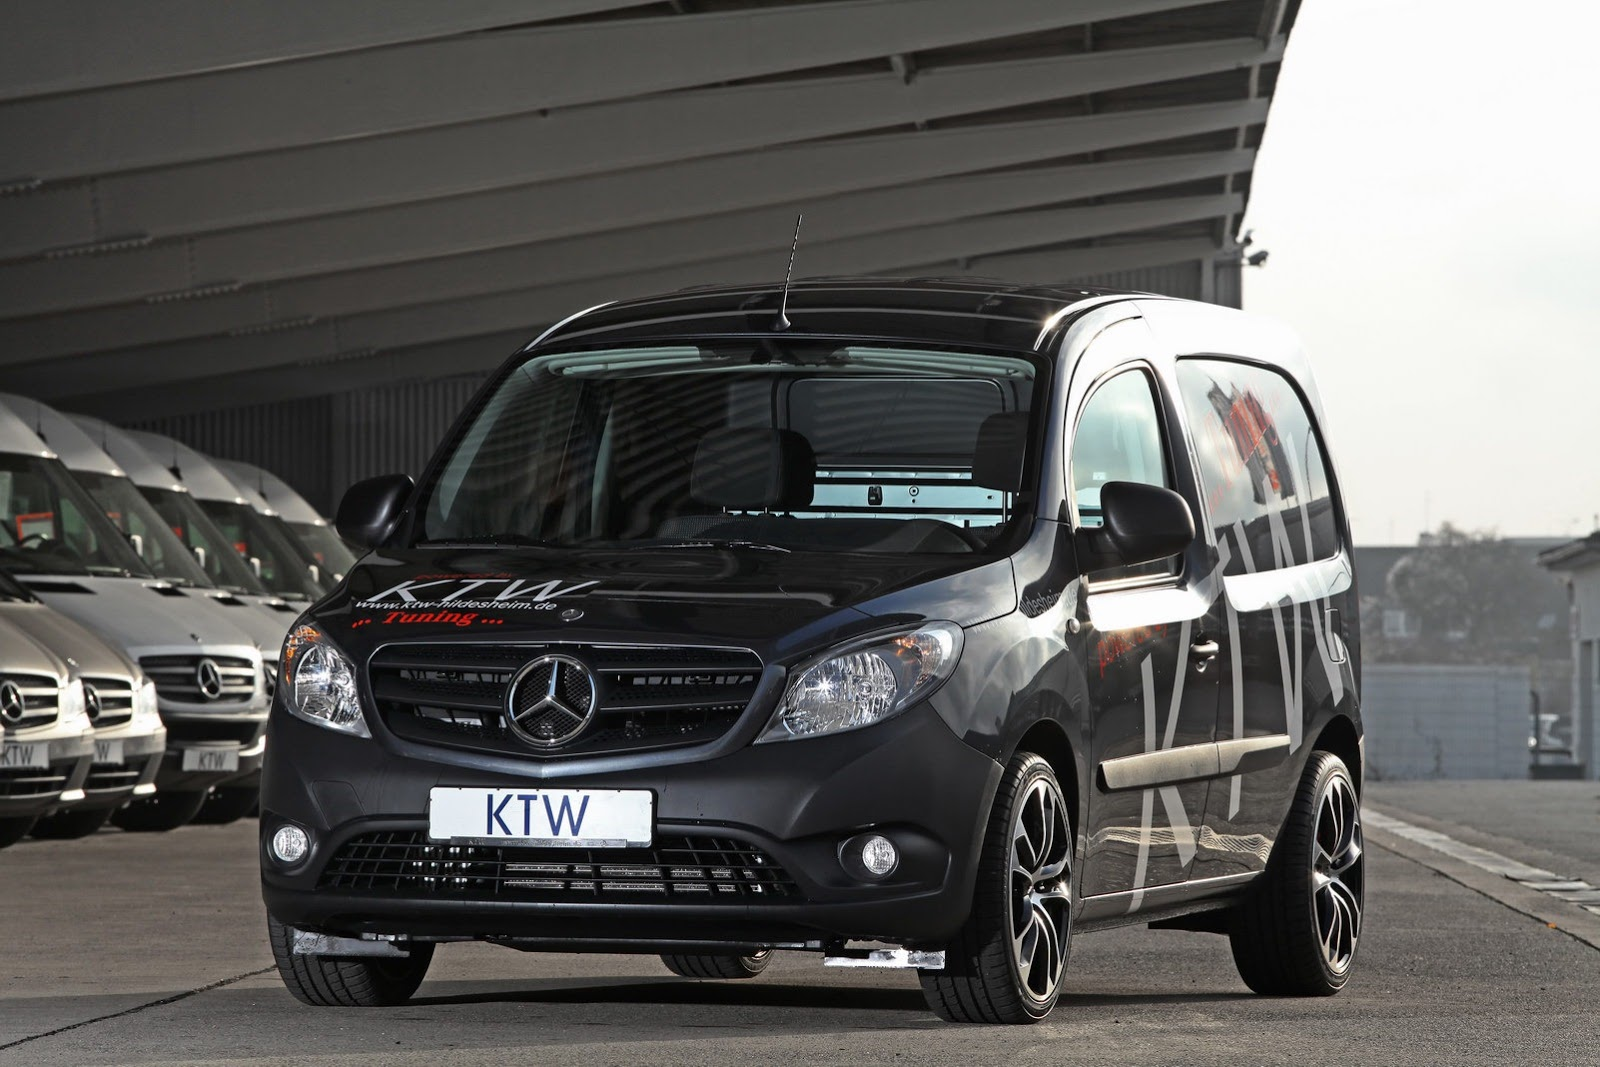 Mercedes Citan Van 22 Mercedes Benz Citan Gets an Enhanced Look